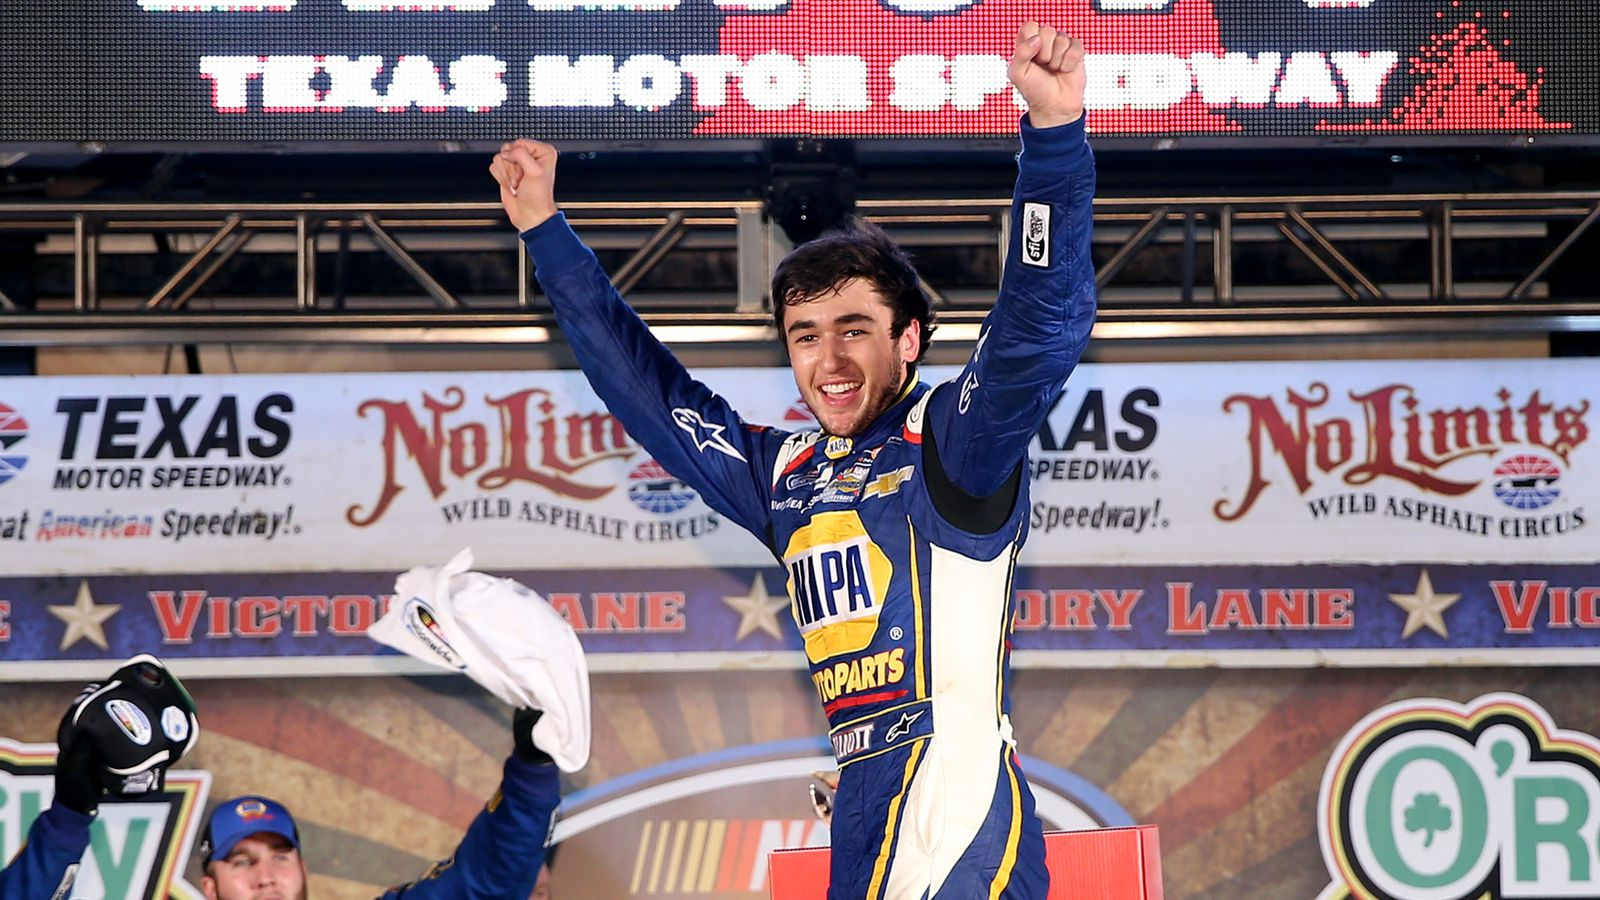 Nascar nationwide series at texas motor speedway results for Nascar tickets for texas motor speedway